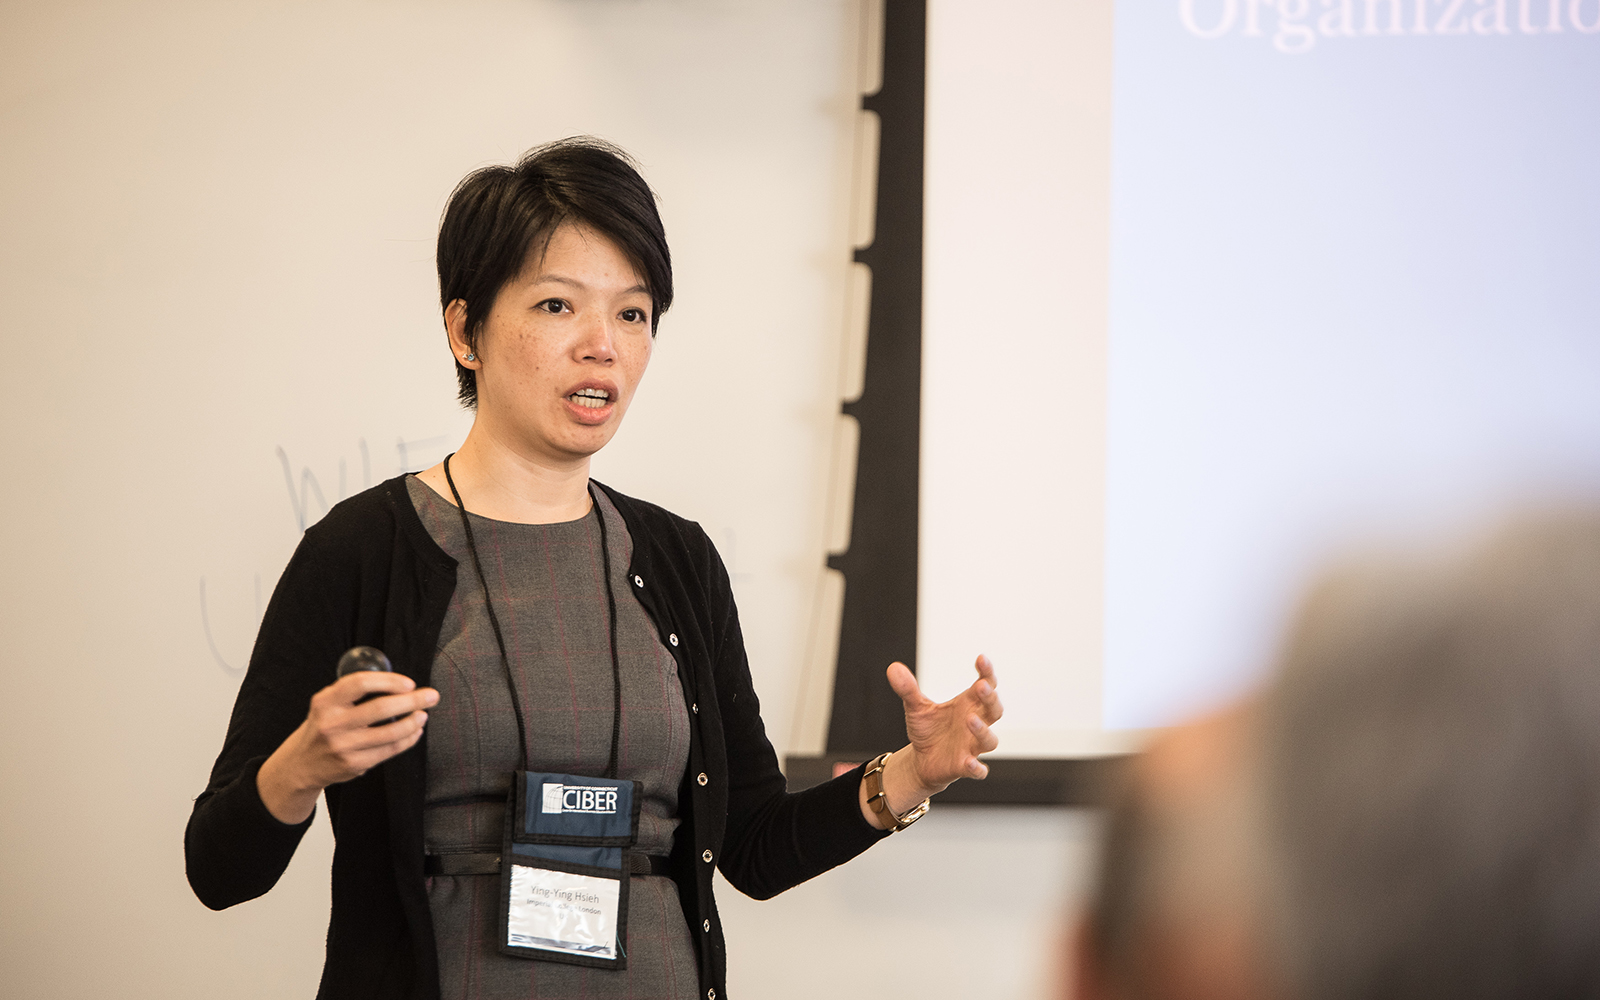 Ying-Ying Hsieh, at UConn's Blockchain Technology & Organizations Research Symposium on Aug. 14 in Stamford. (Nathan Oldham/UConn School of Business)